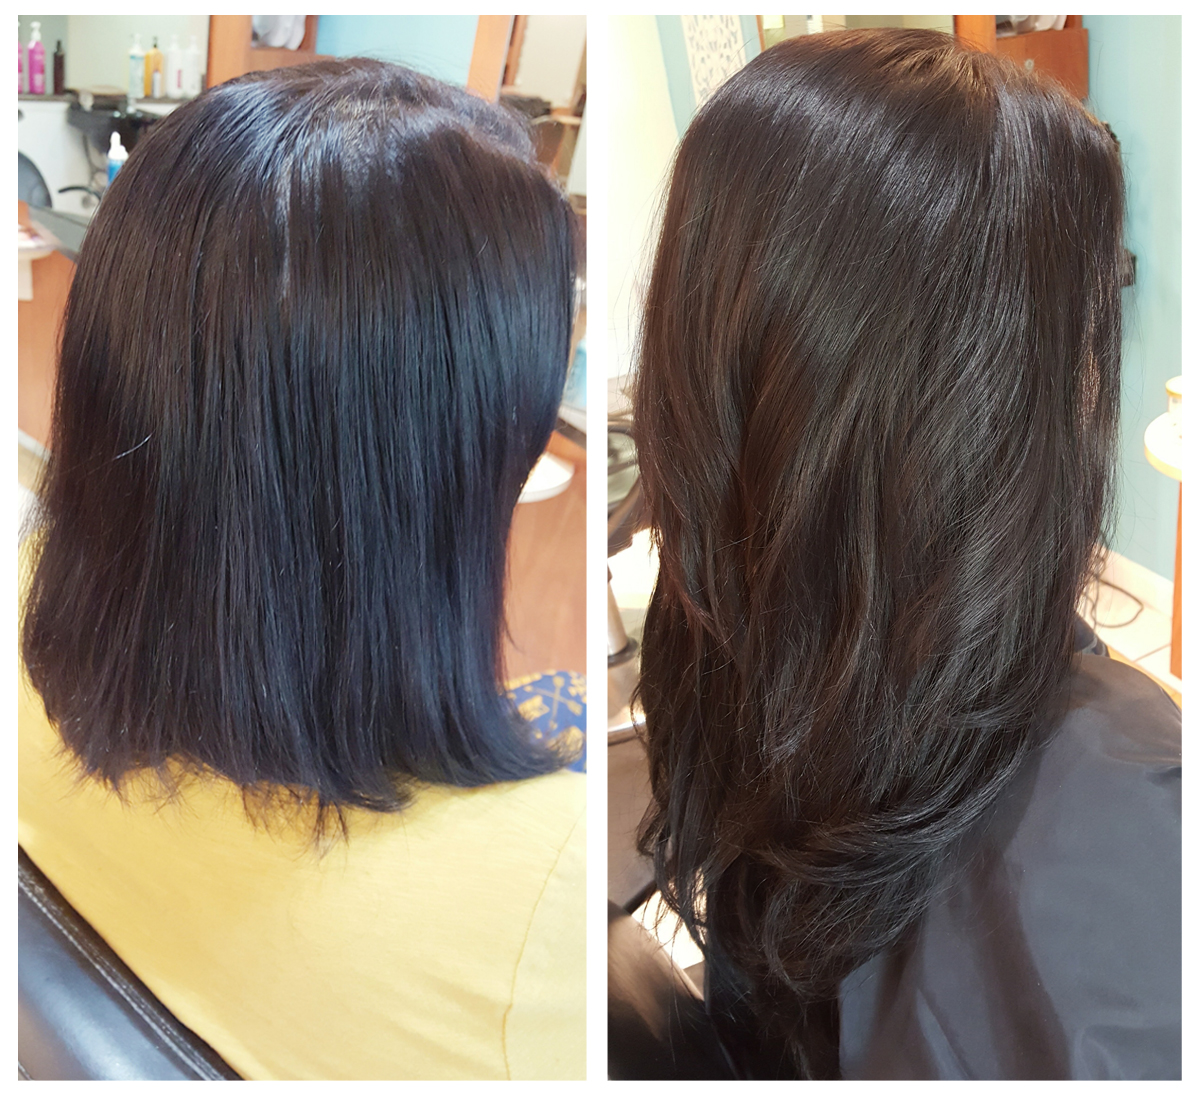 Salon-180-Before-and-After-Jessica-Extensions